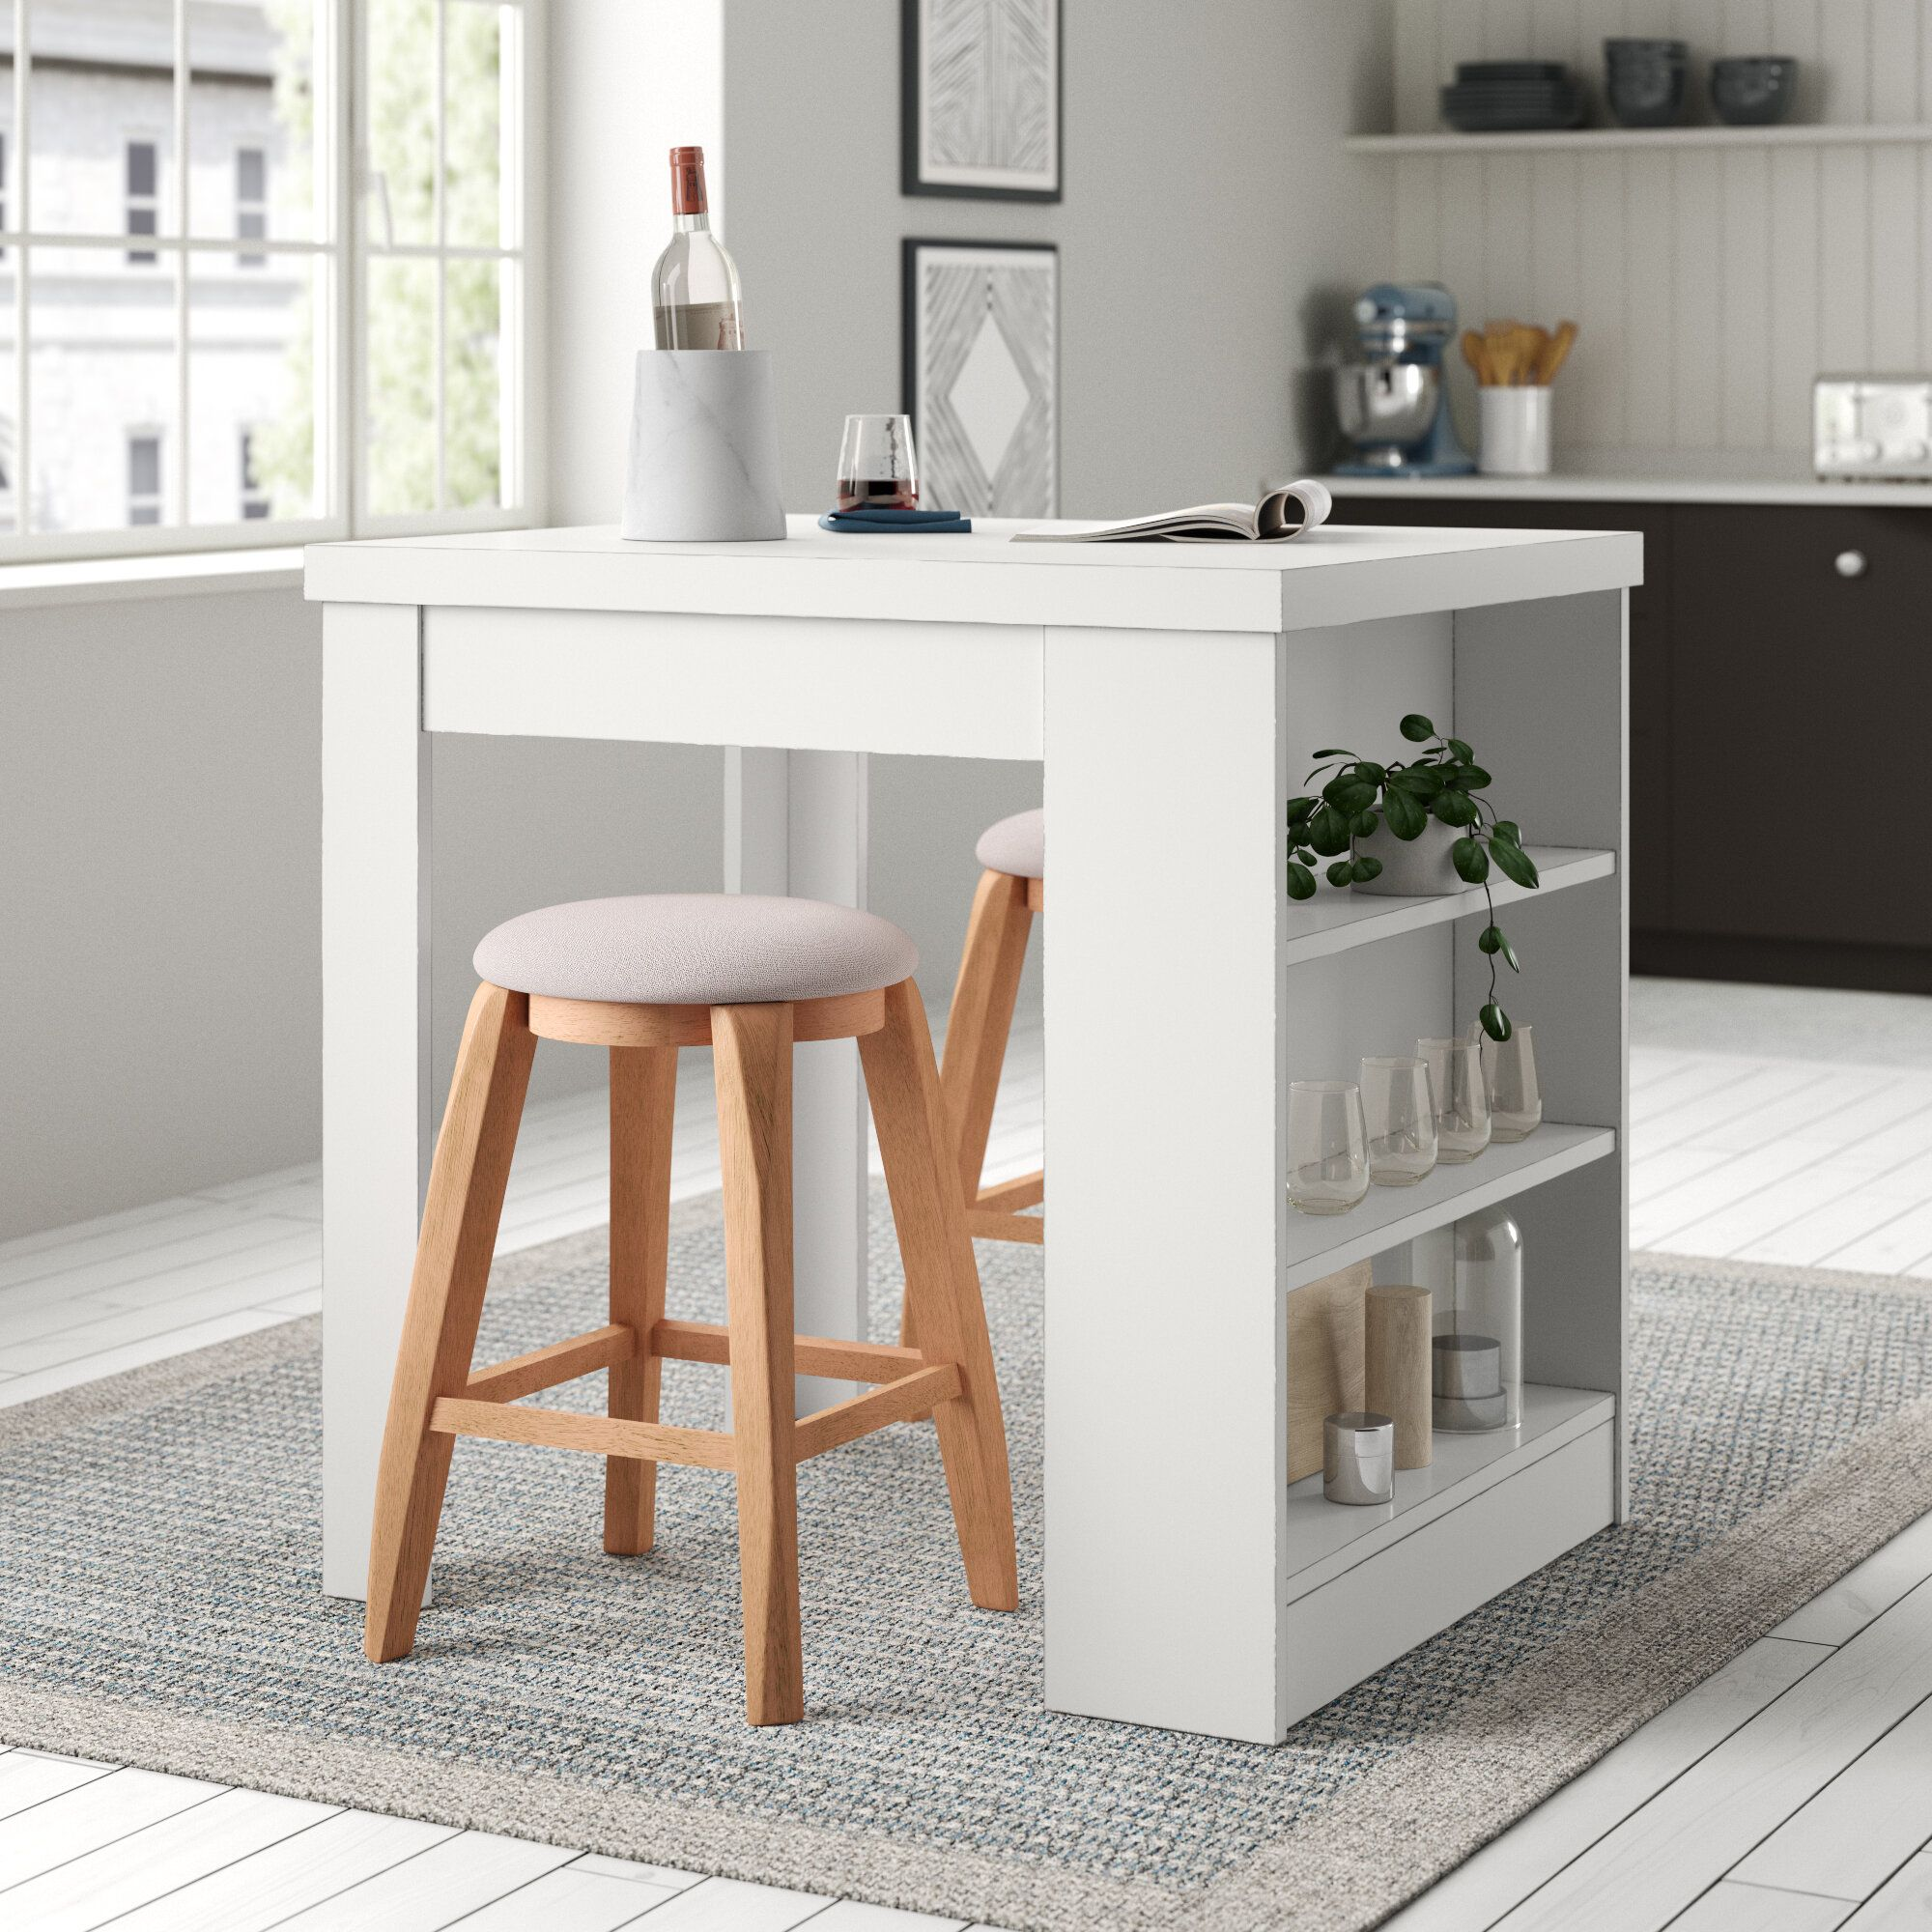 Andover Mills Kuhnhenn Kitchen Cart With Wood Top Reviews Wayfair Counter Height Dining Table Dining Table In Kitchen Solid Wood Dining Table